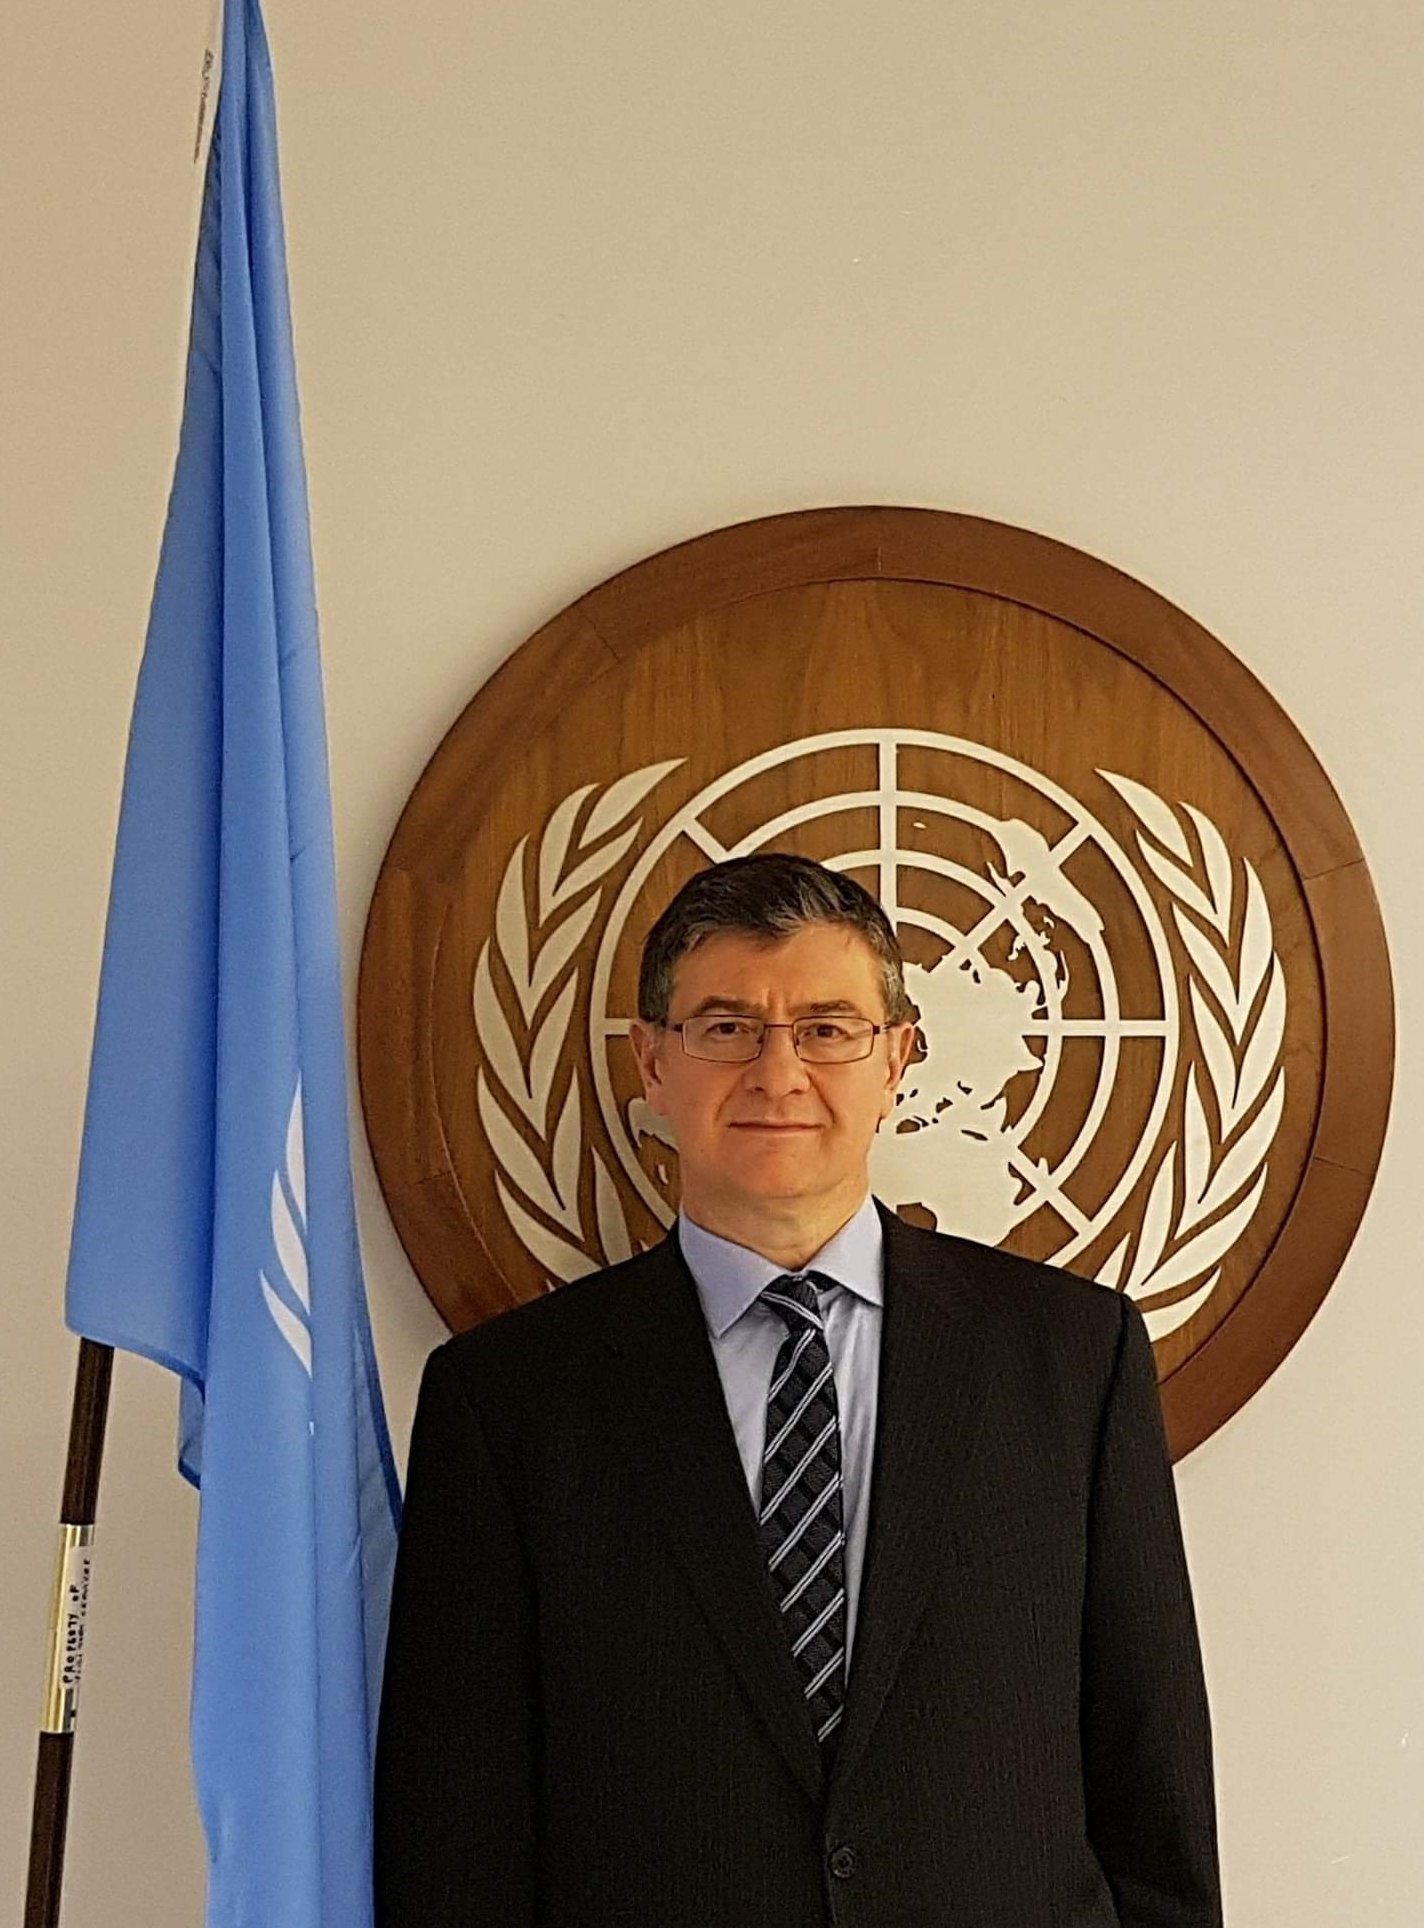 Cihan Terzi, a member of the Advisory Committee on Administrative and Budgetary Questions for the United Nations. (Linkedin Photo)